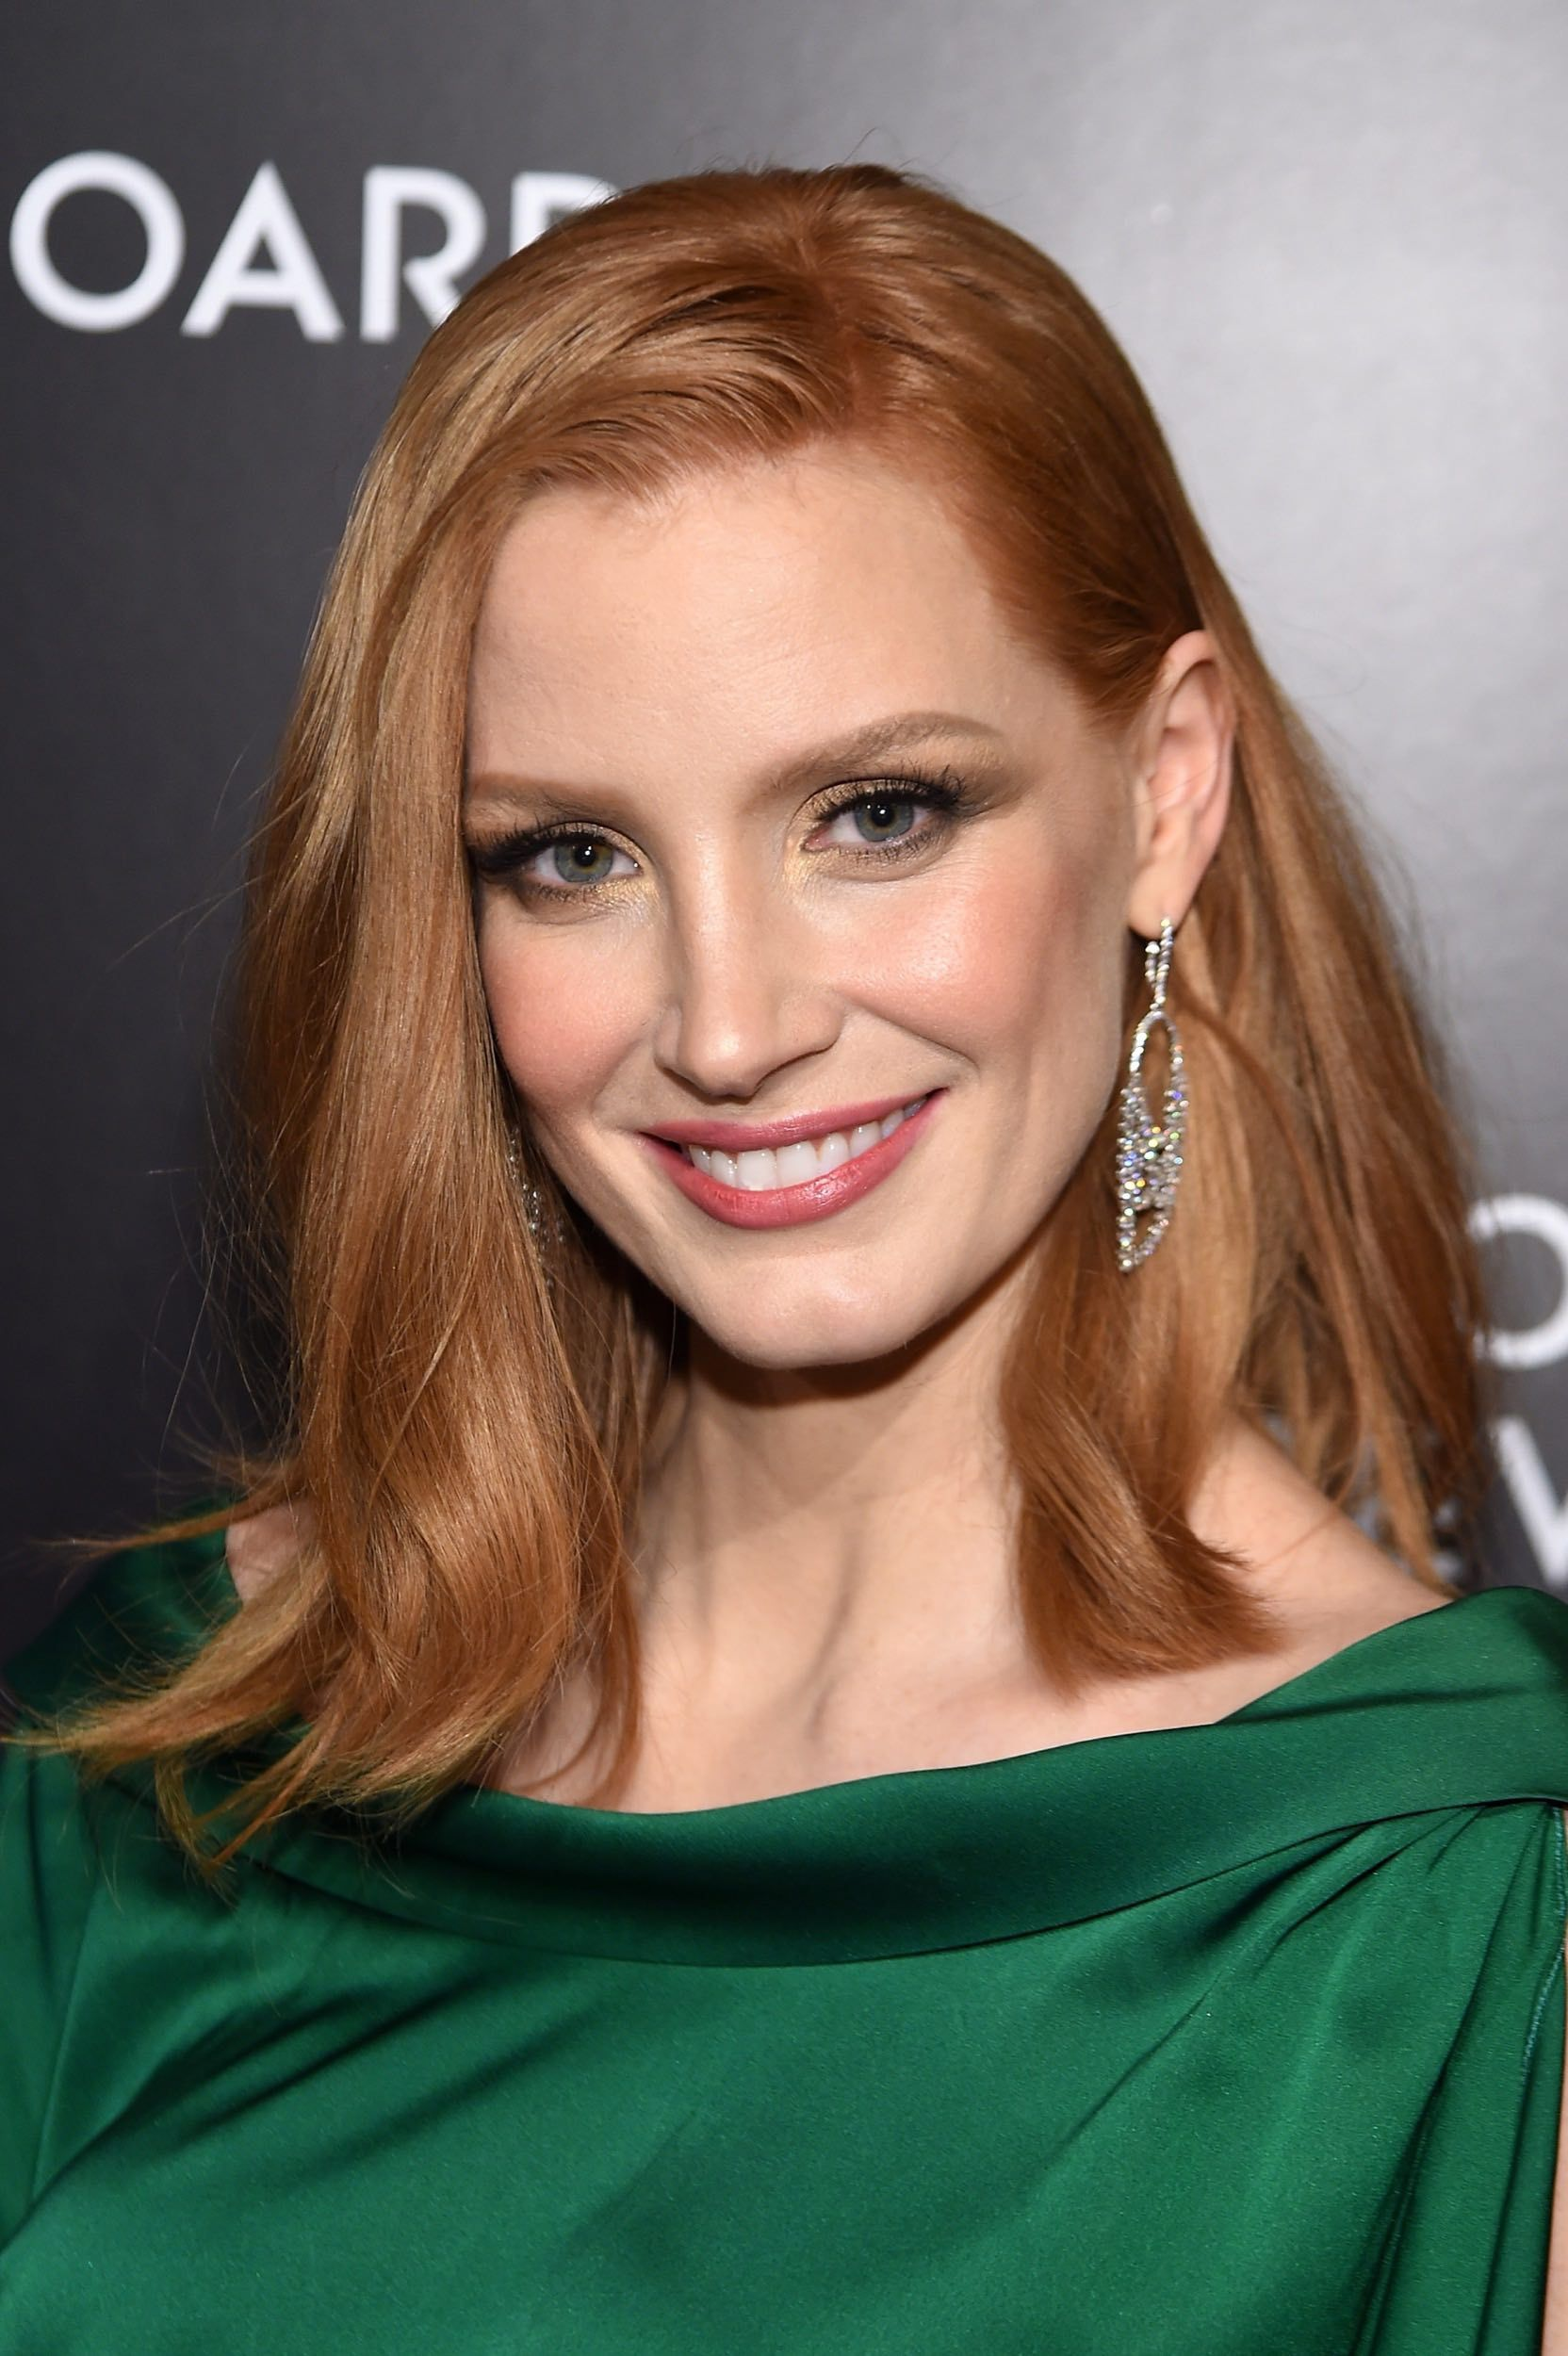 Jessica chastain actresses in pinterest jessica chastain